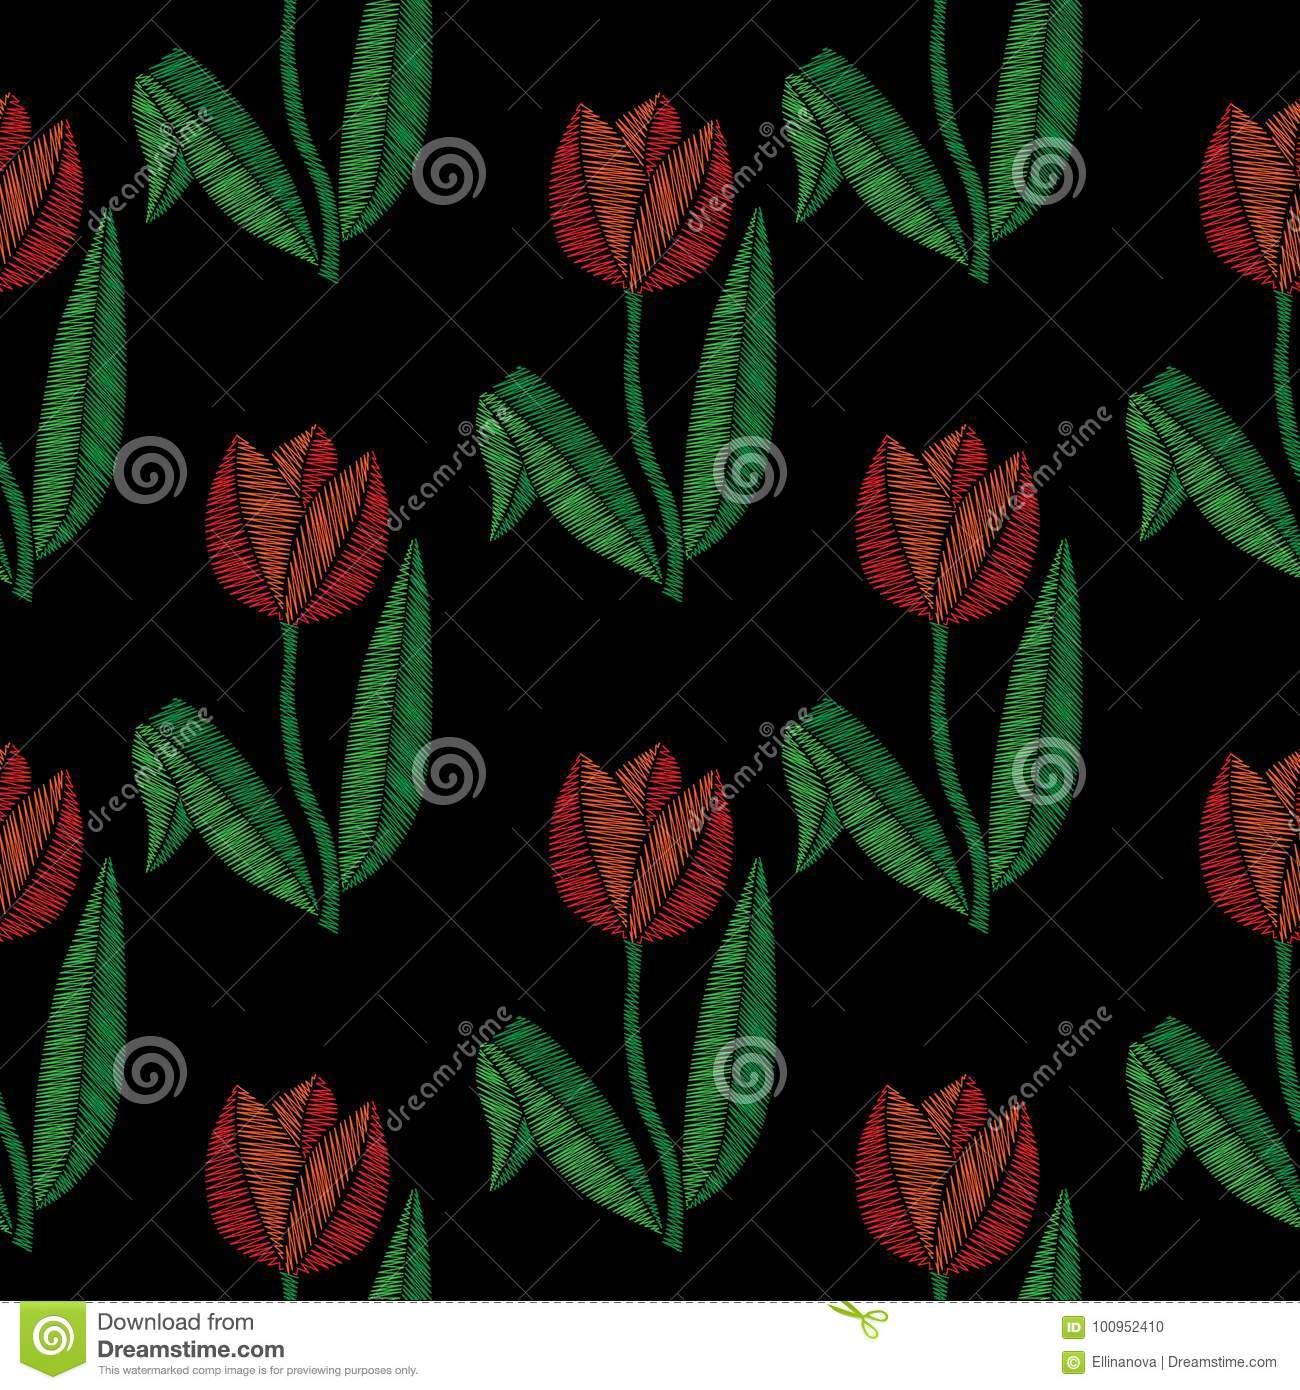 Embroidery Stitches Imitation Seamless Pattern With Little Tulip